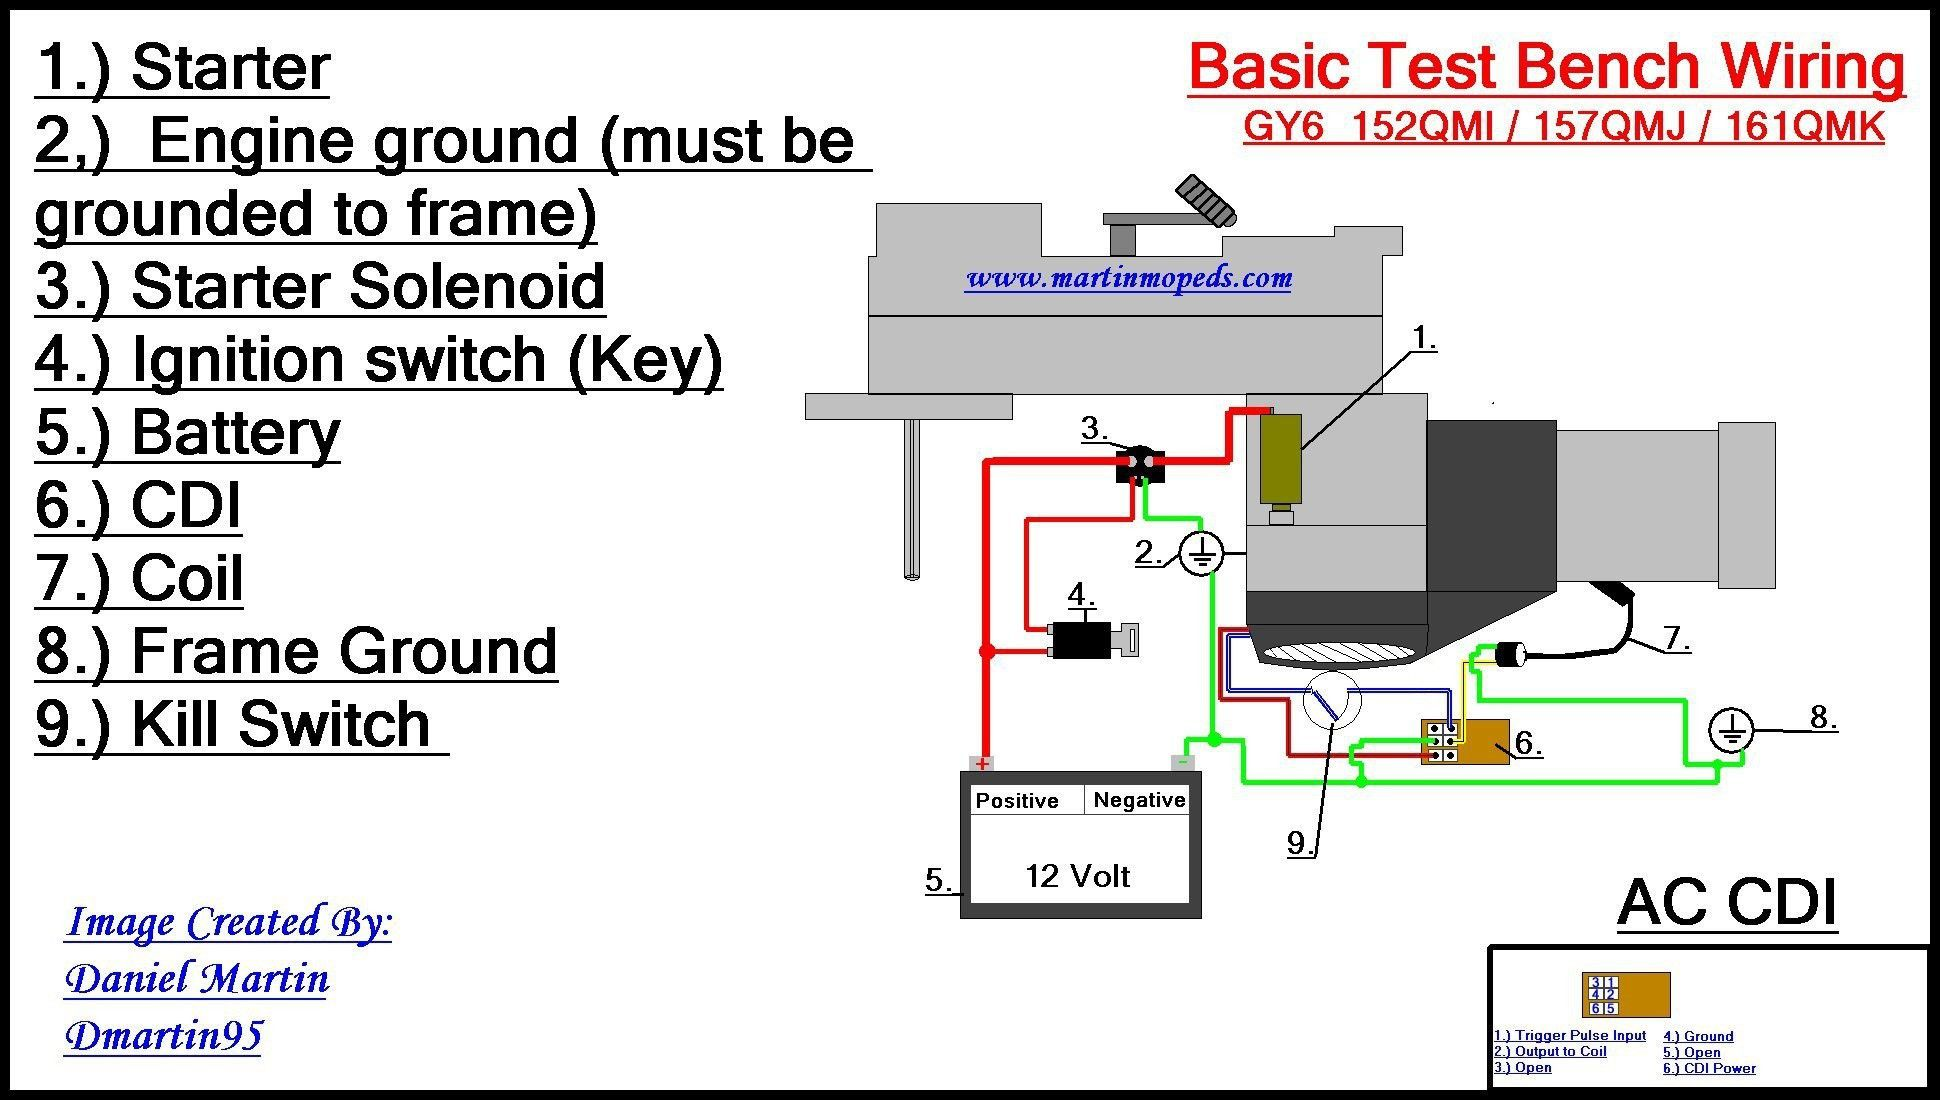 4 Wire Ignition Switch Diagram Atv New Excellent Chinese Cdi ...  Pin Cdi Wiring Diagram Coil on